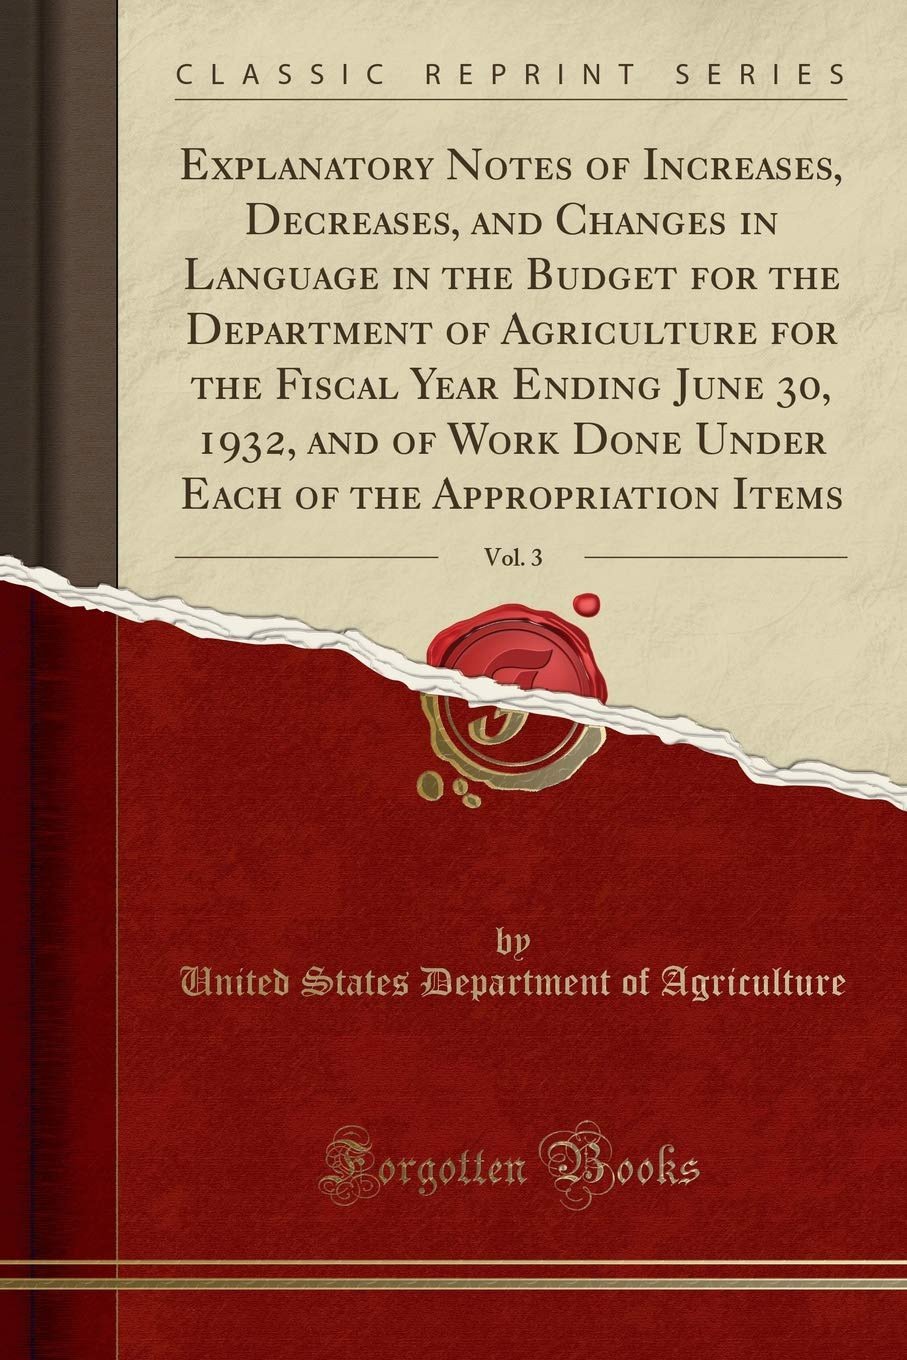 Explanatory Notes of Increases, Decreases, and Changes in Language in the Budget for the Department of Agriculture for the Fiscal Year Ending June 30, ... Appropriation Items, Vol. 3 (Classic Reprint)